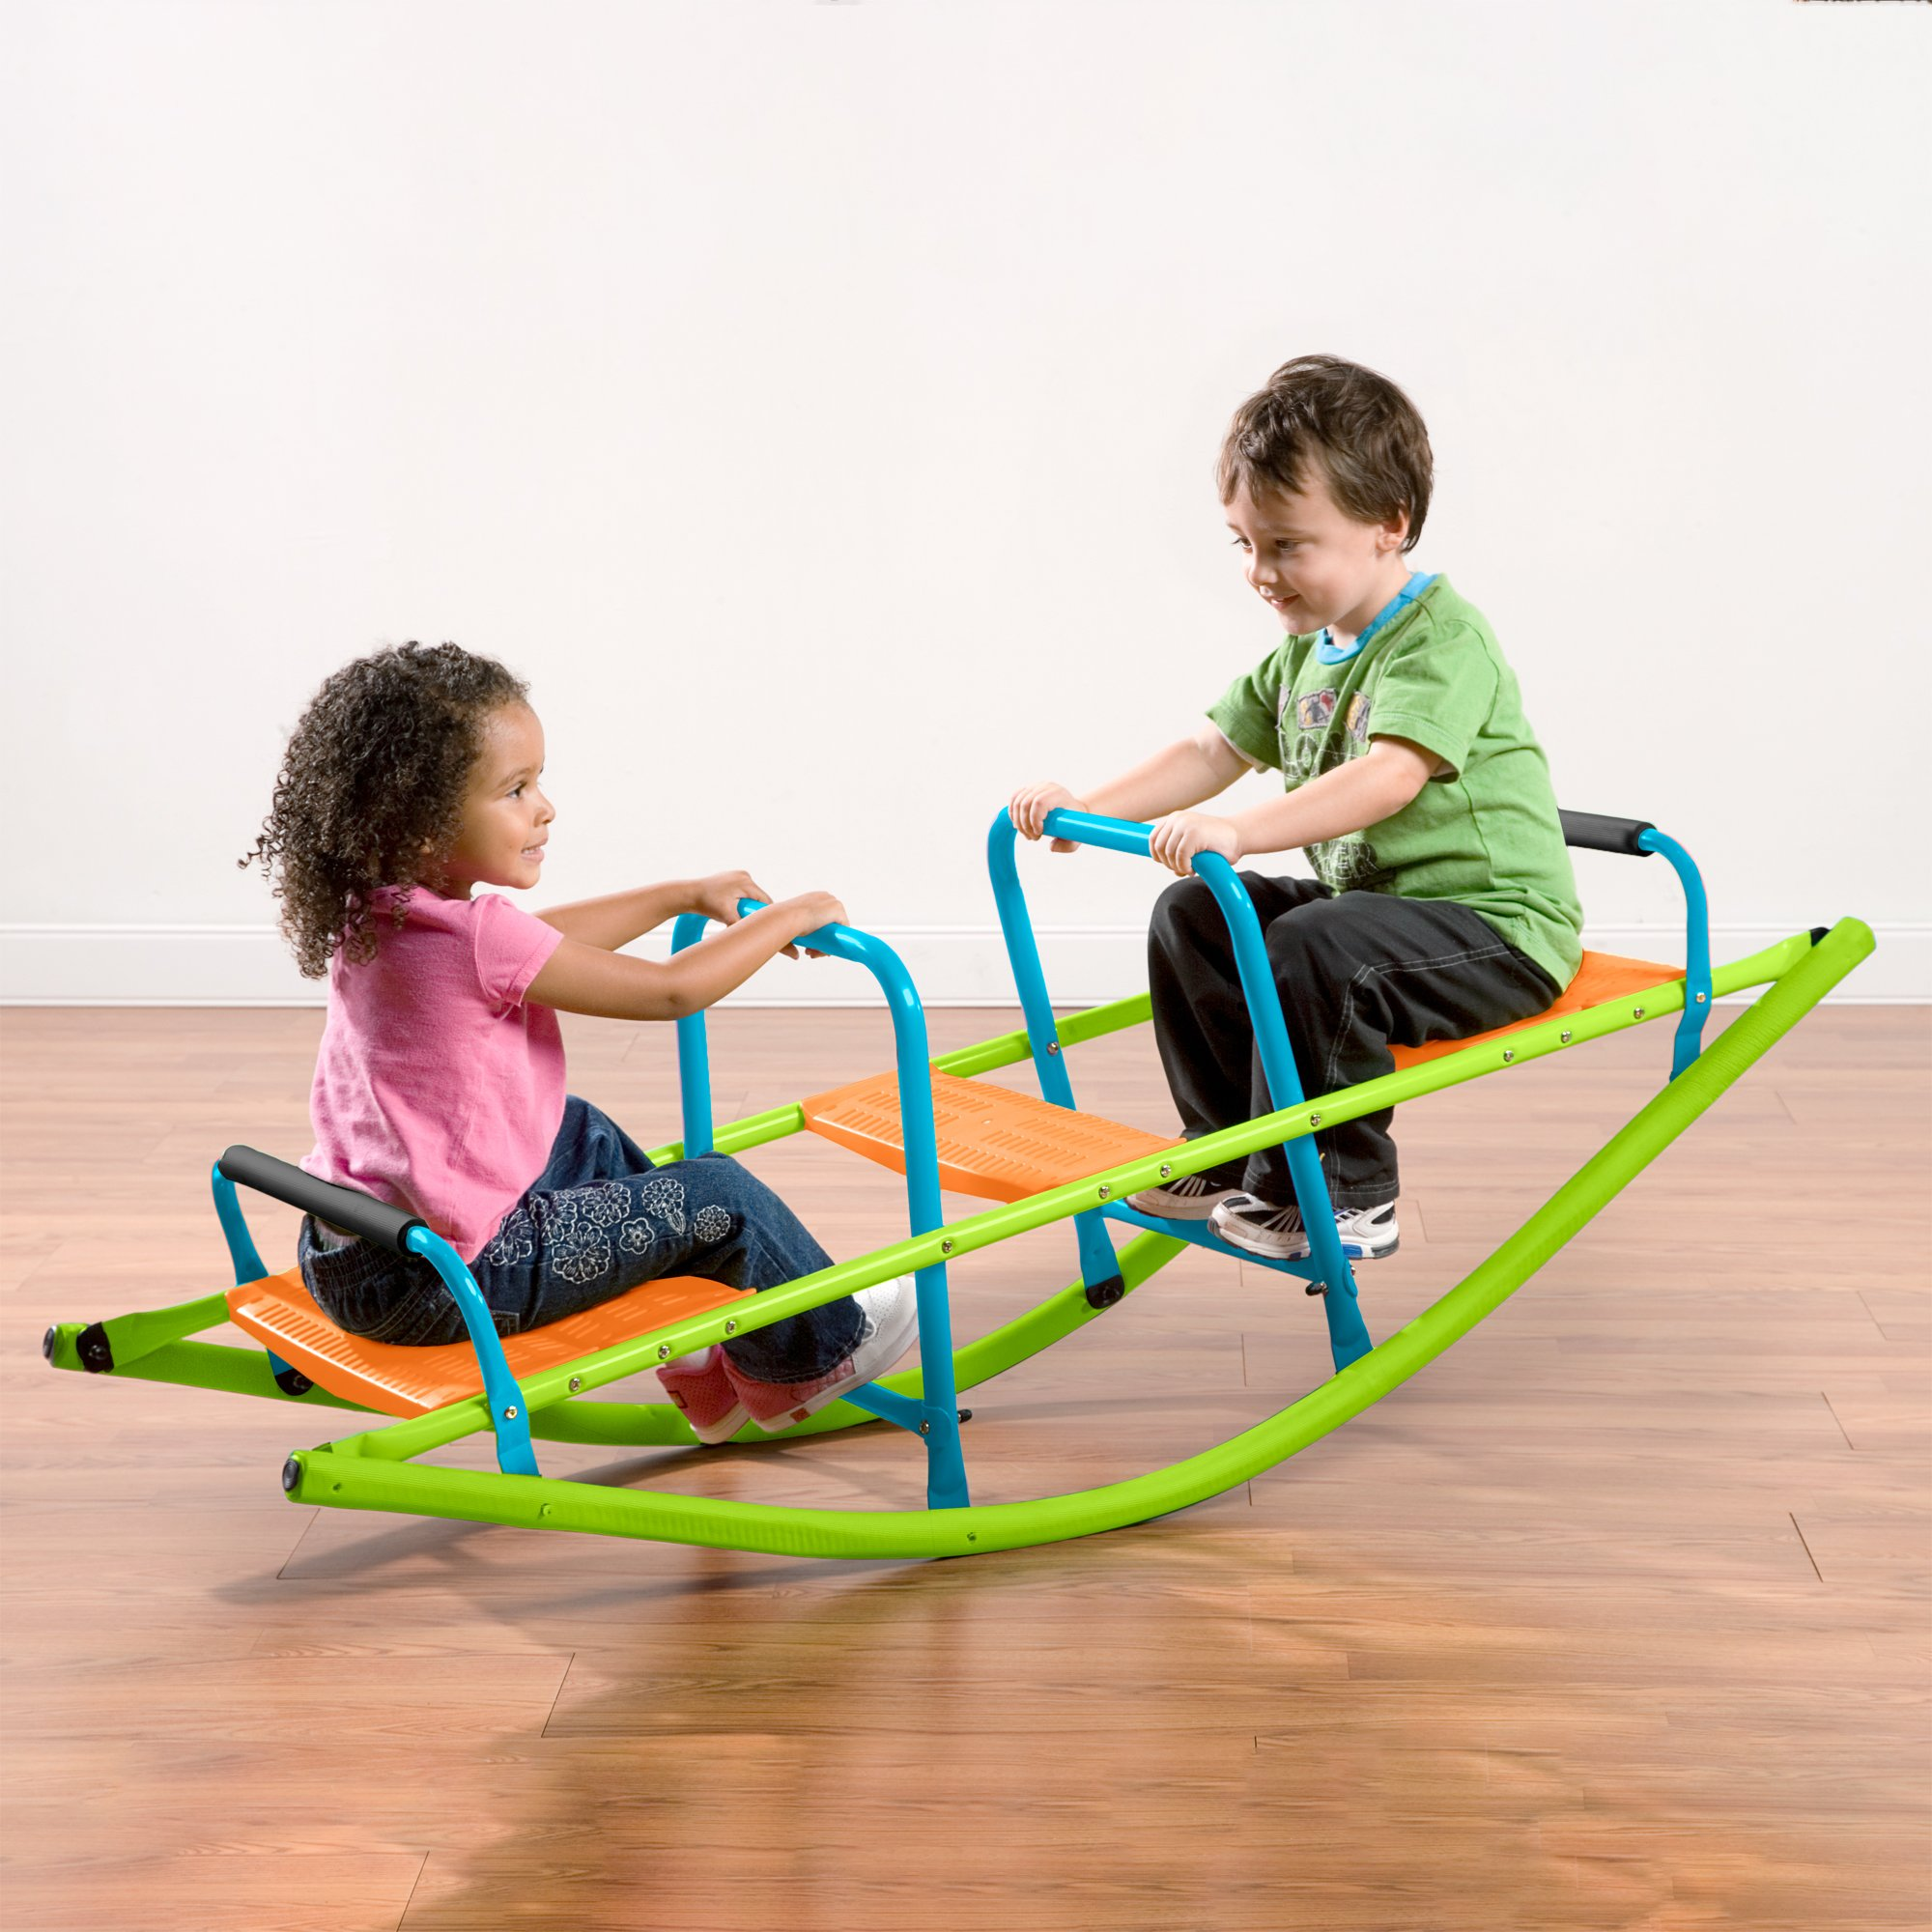 Pure Fun Rocker Kids Seesaw Indoor Or Outdoor Ages 3 To